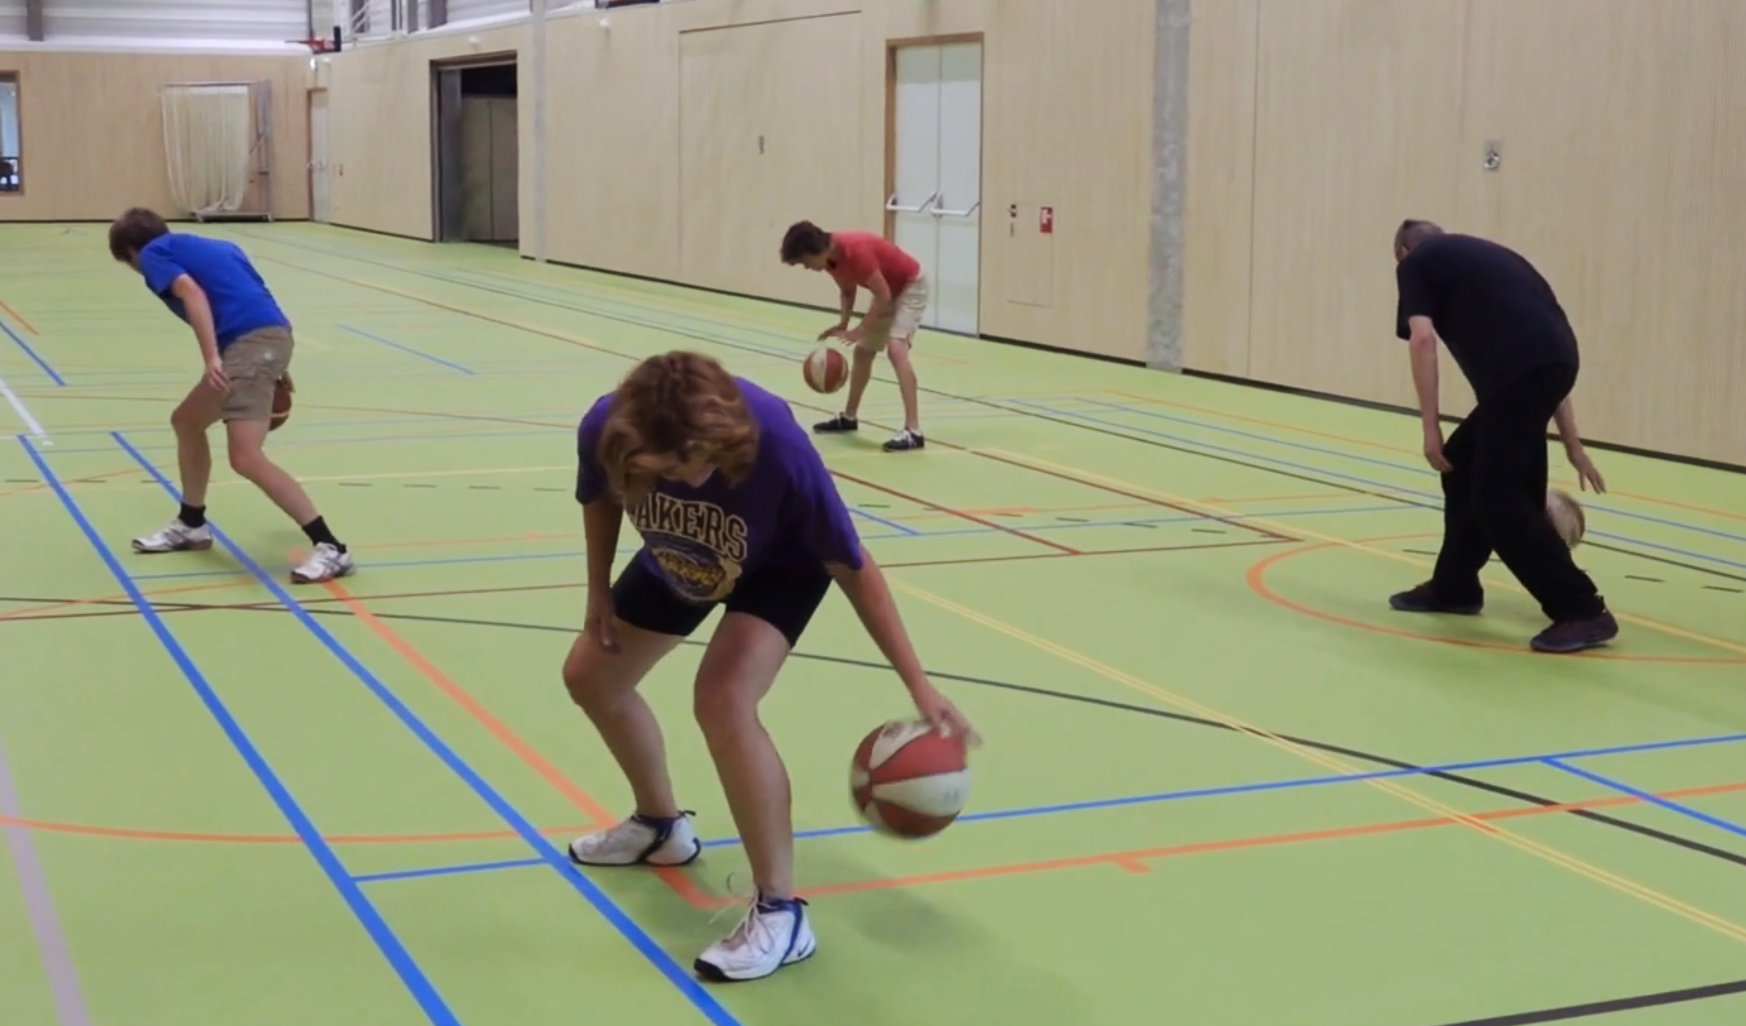 joy-m walking basketbal malden